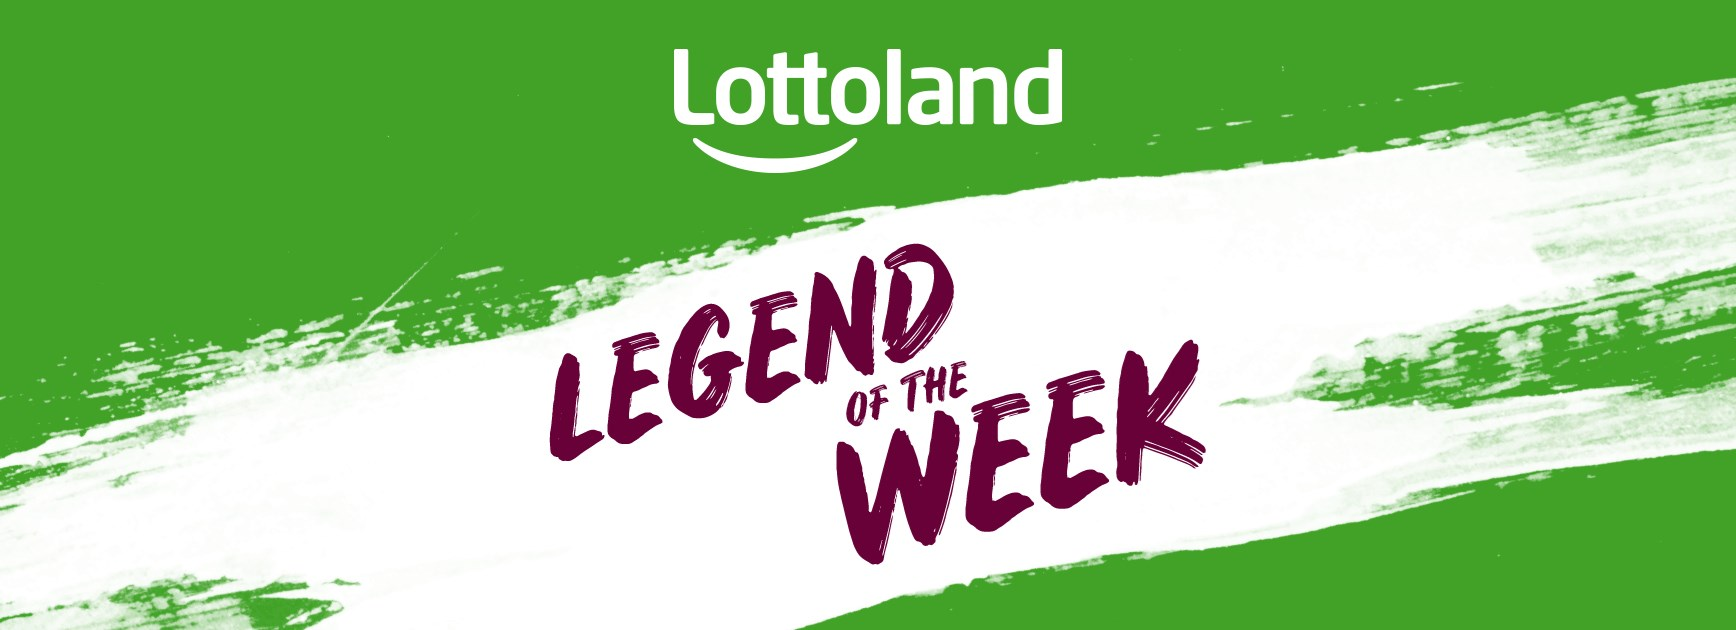 Lottoland Legend of the Week (Round 21)